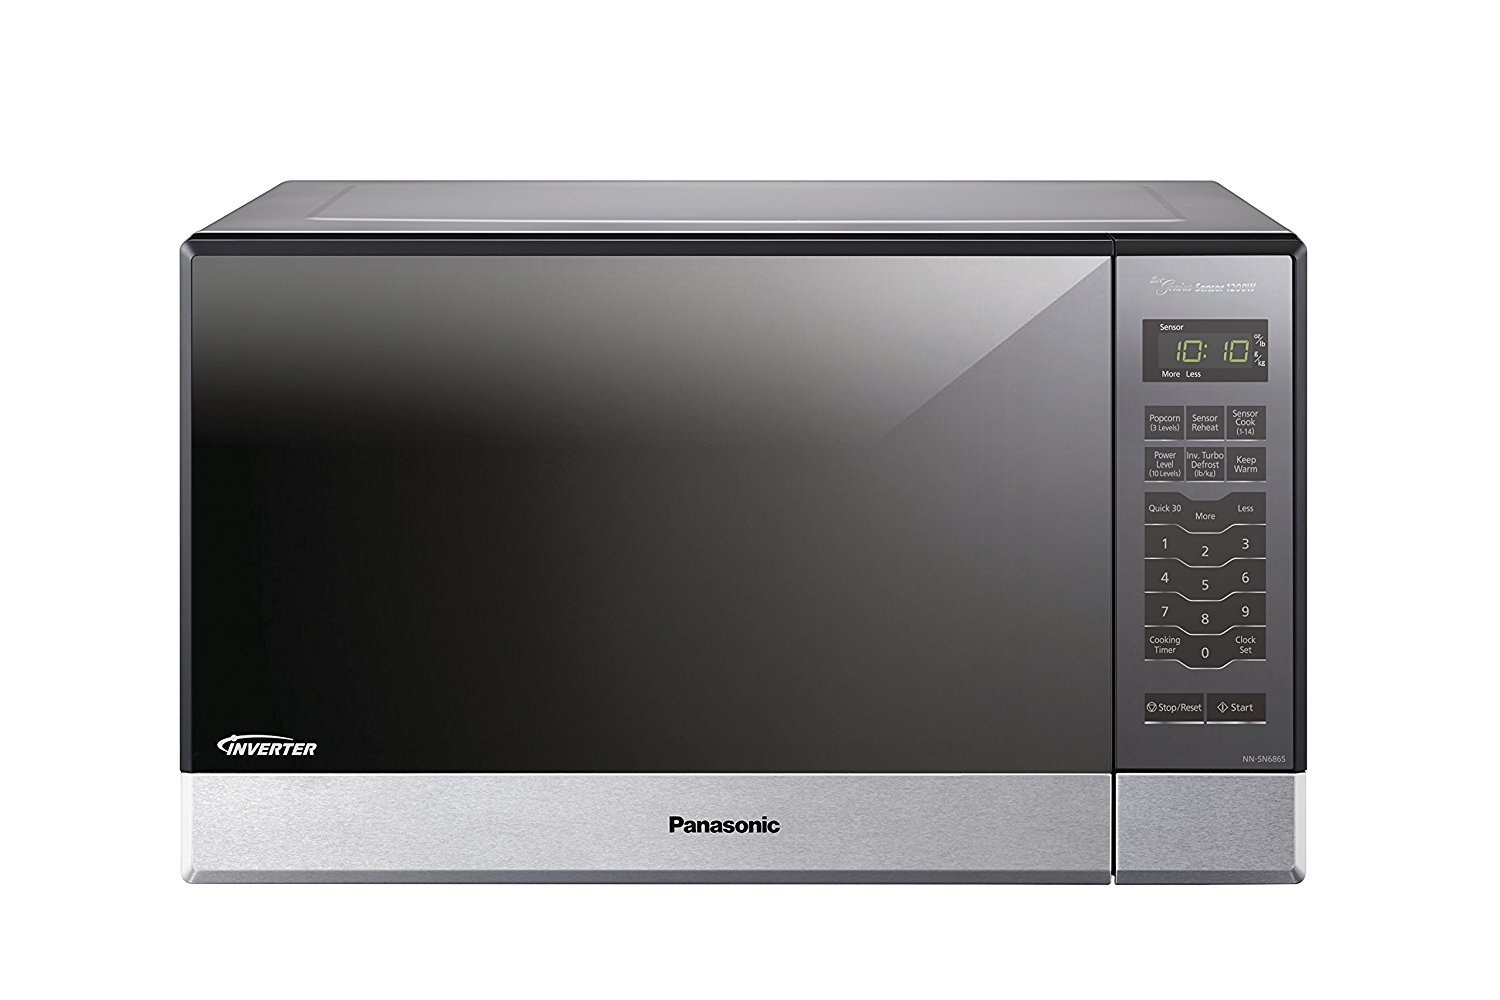 Microwave Oven Compact Countertop Panasonic Electric Stainless Steel 1200 Watt 1.2 cu. ft. Inverter Cookware With Free Pot Holders